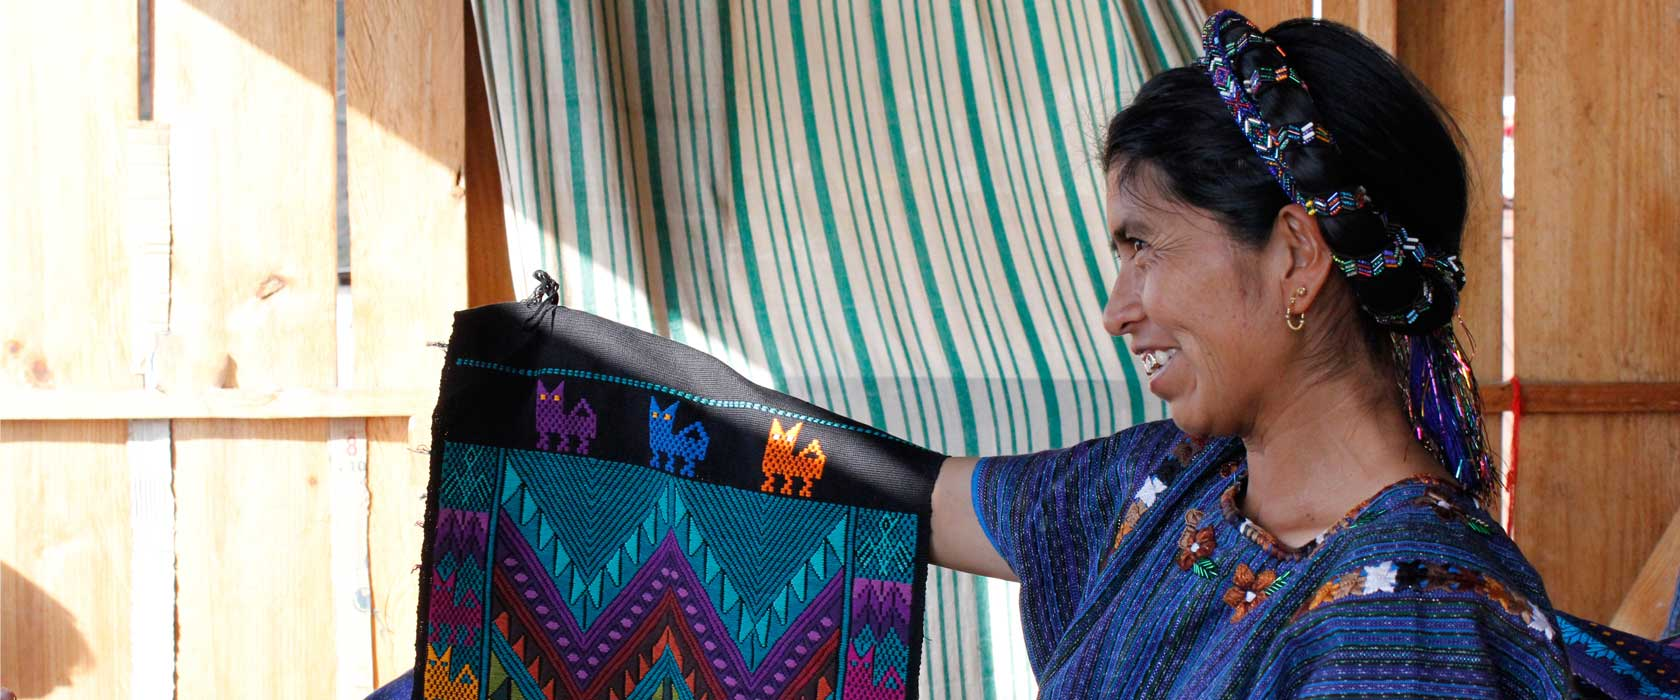 Ethical Fashion, Guatemala, Artisan, Maria, table runners, ethical fashion brand